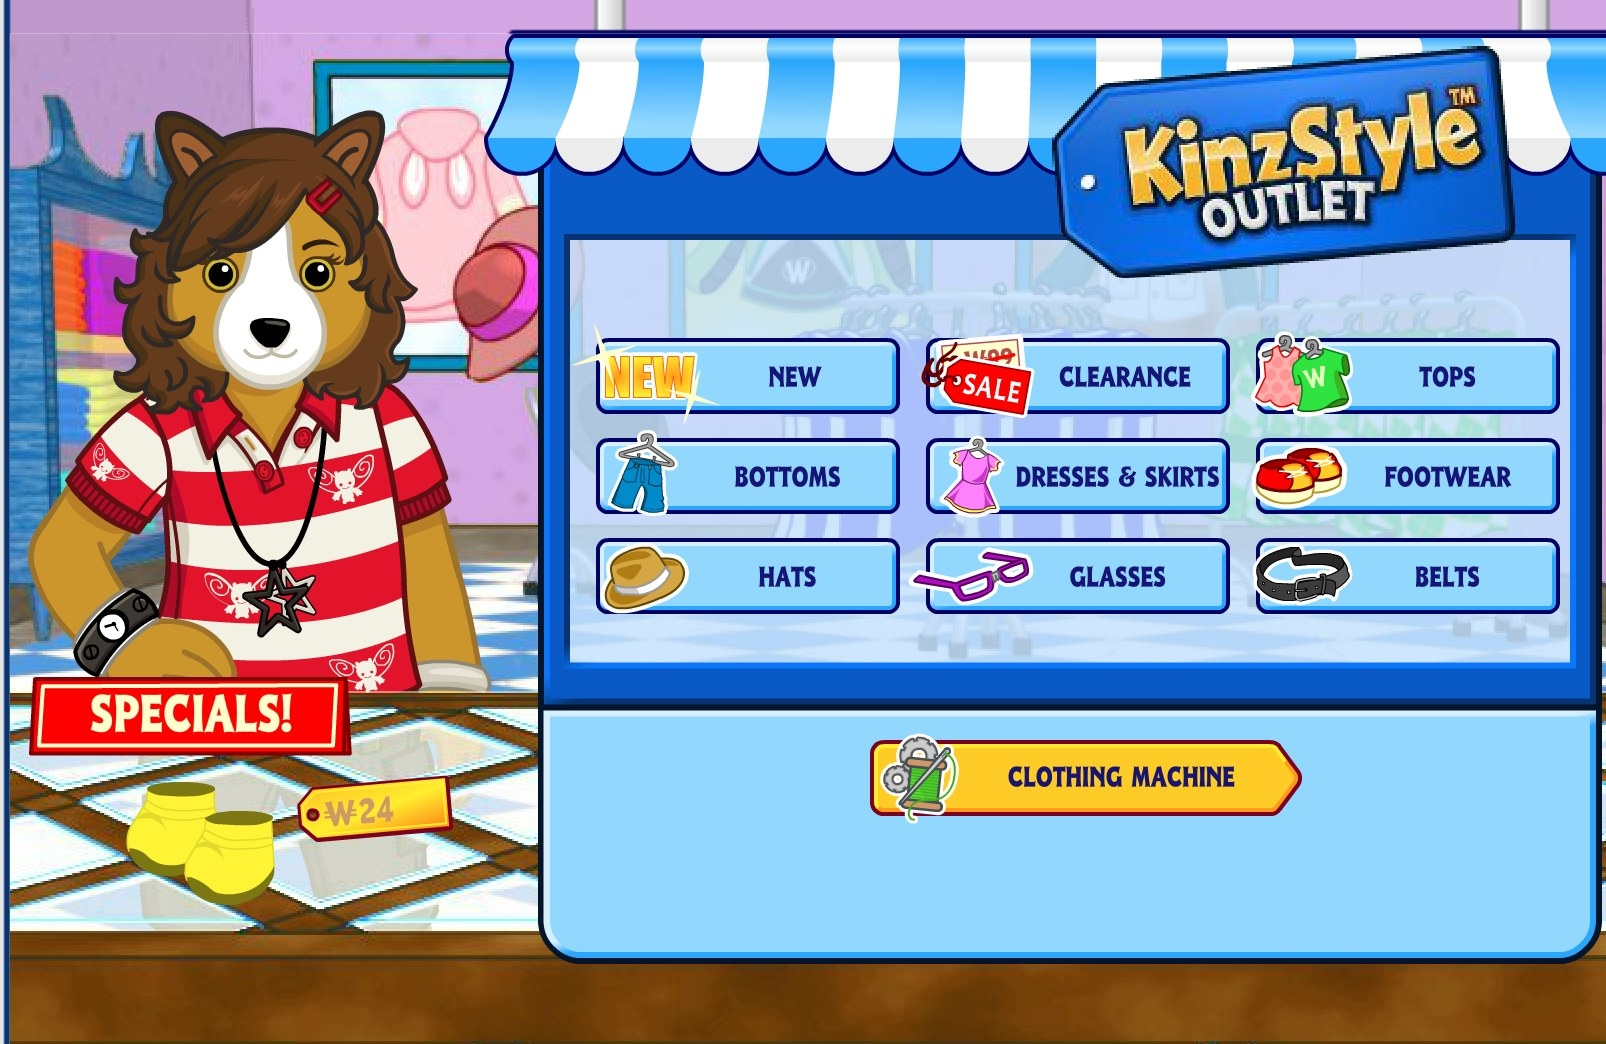 A dog character sells clothing and accessories at the KinzStyle Outlet